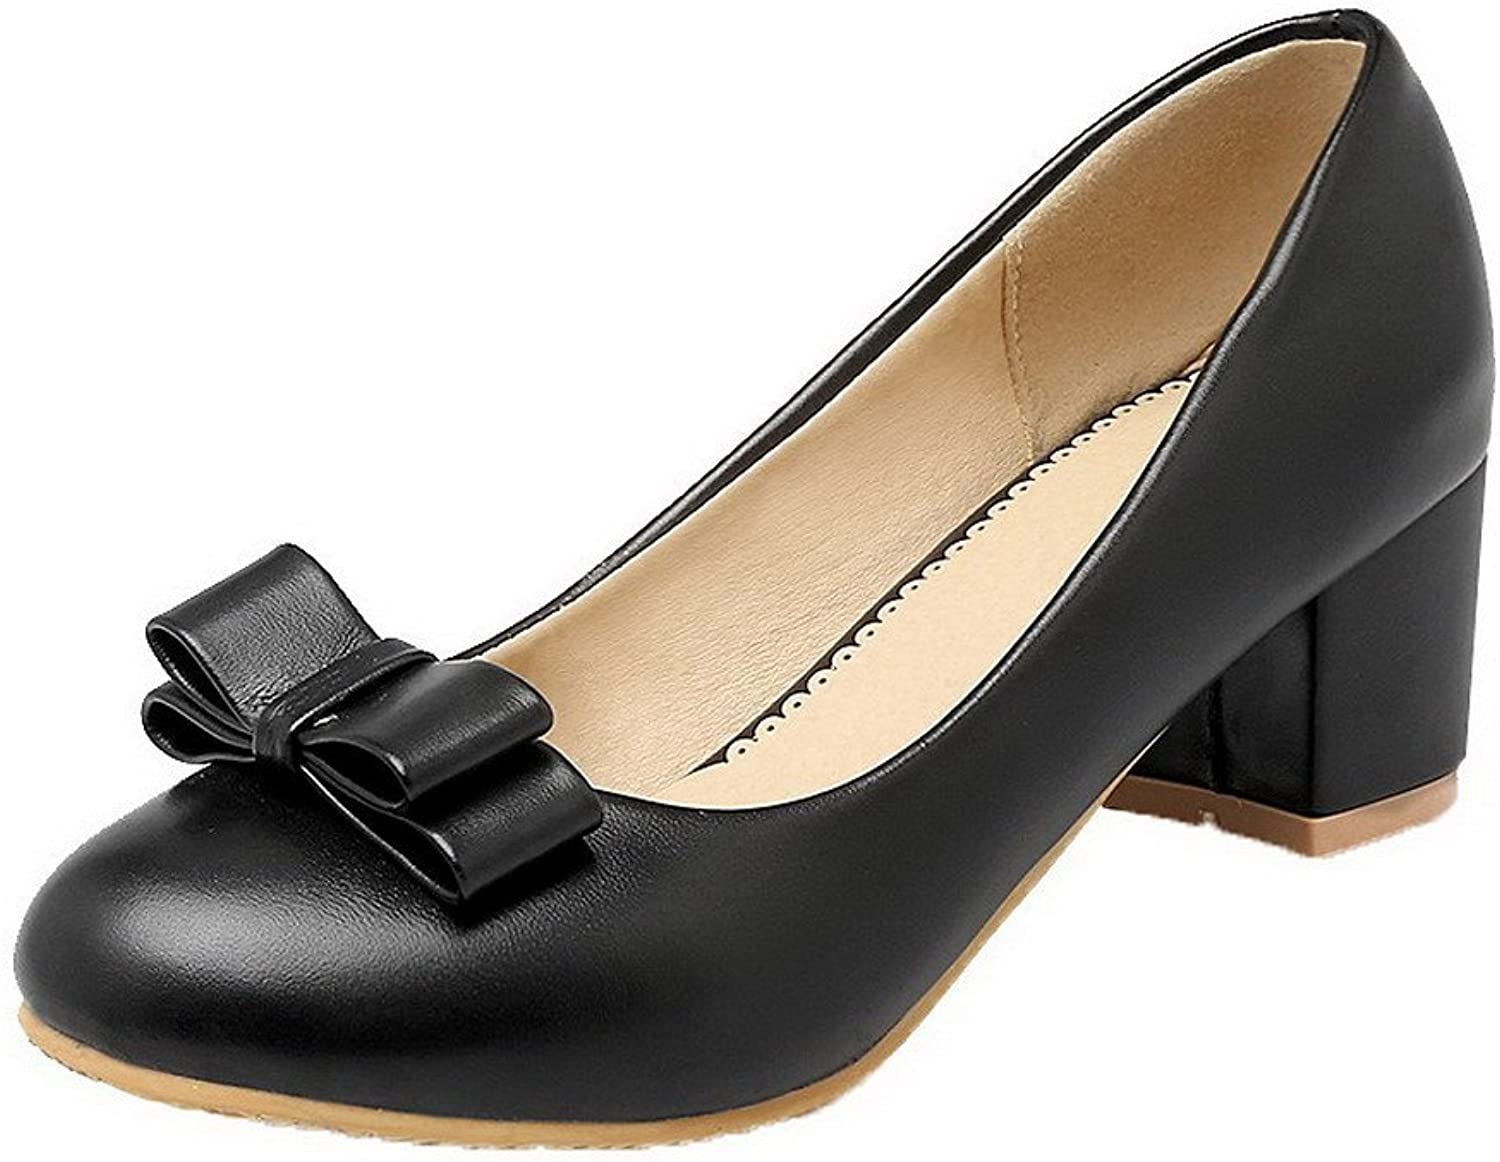 WeenFashion Women's PU Pull-On Pumps-shoes